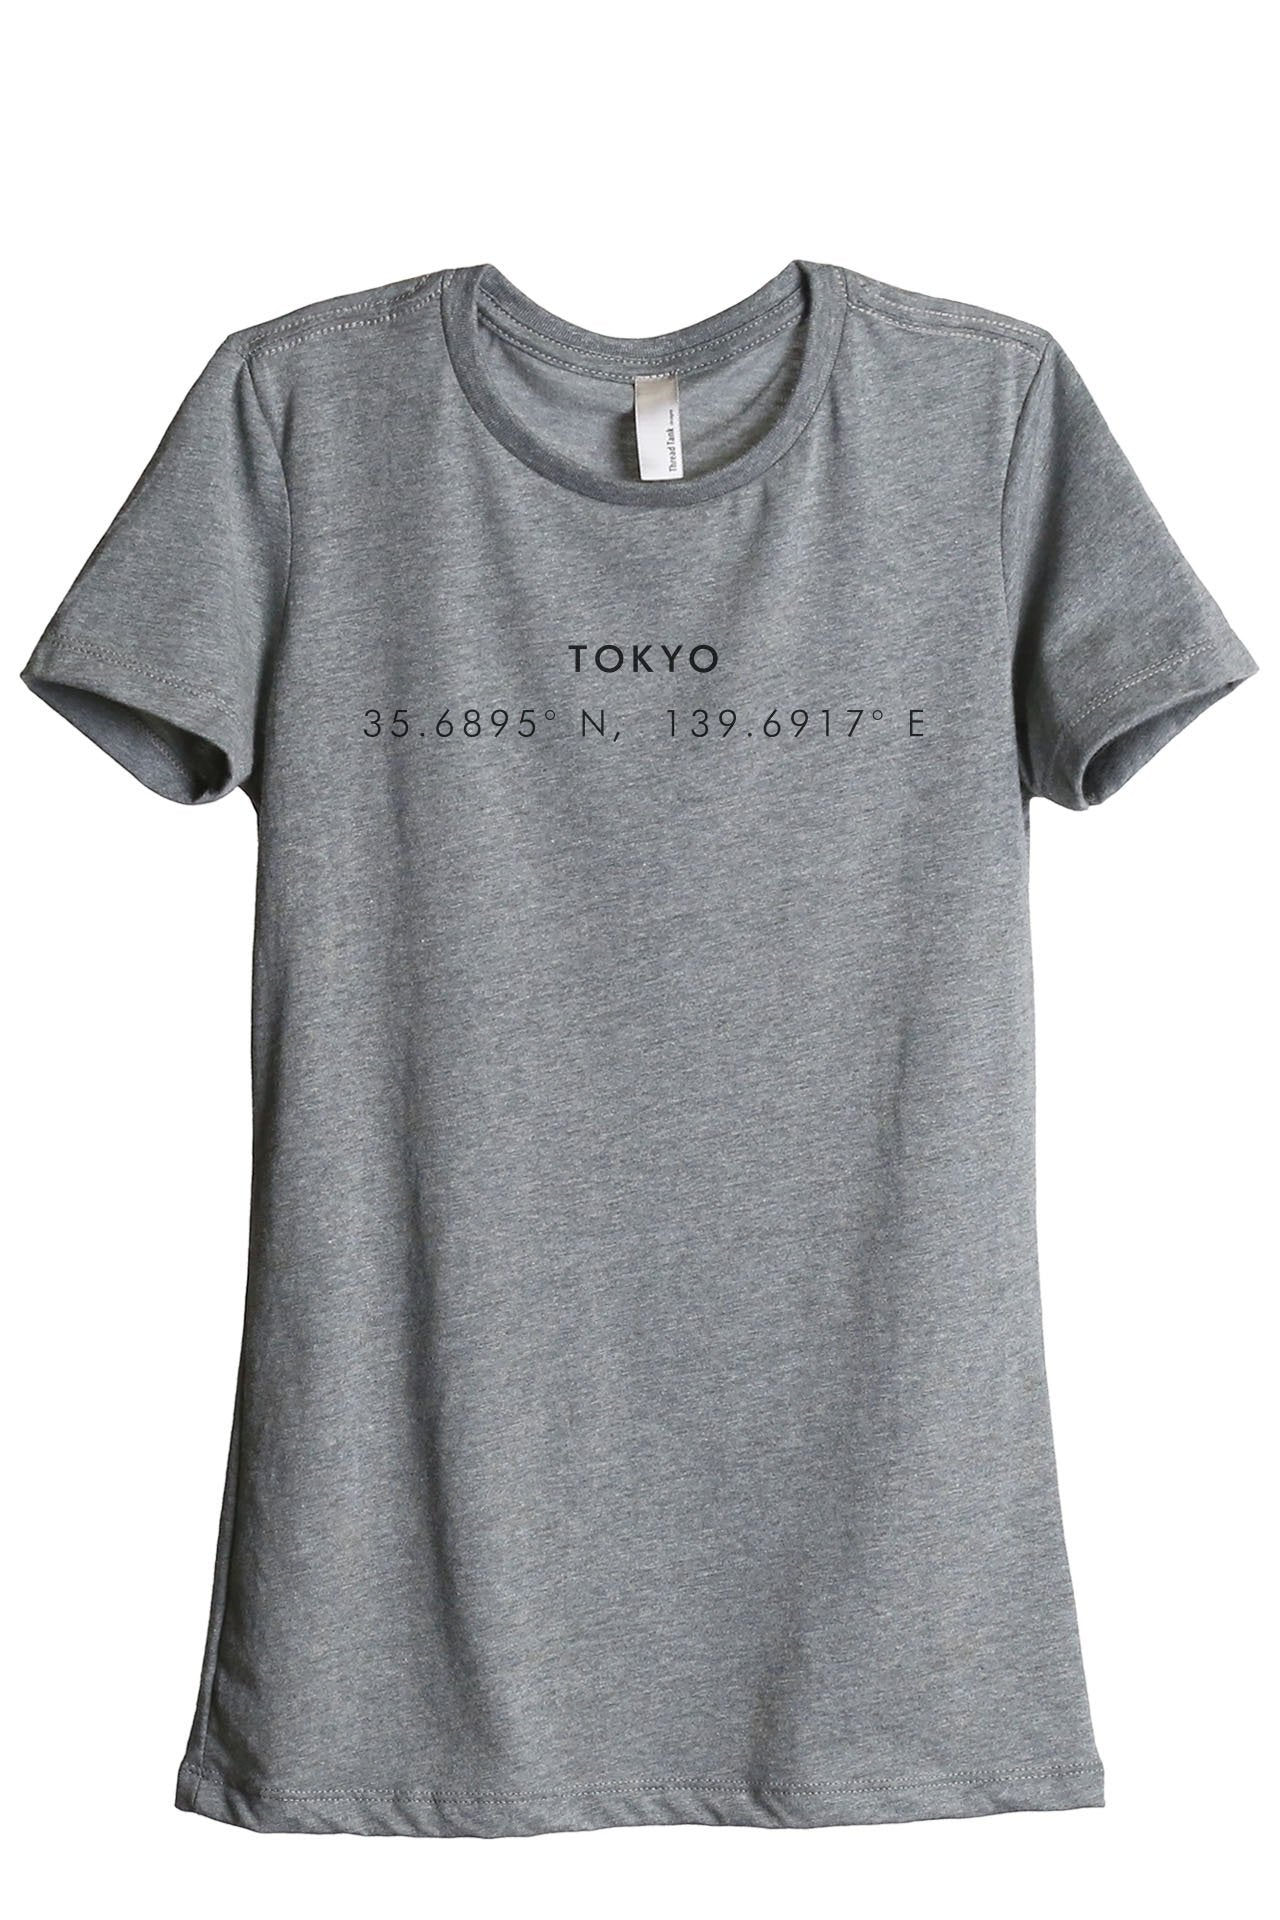 Tokyo Coordinates Women's Relaxed Crewneck T-Shirt Top Tee Heather Grey